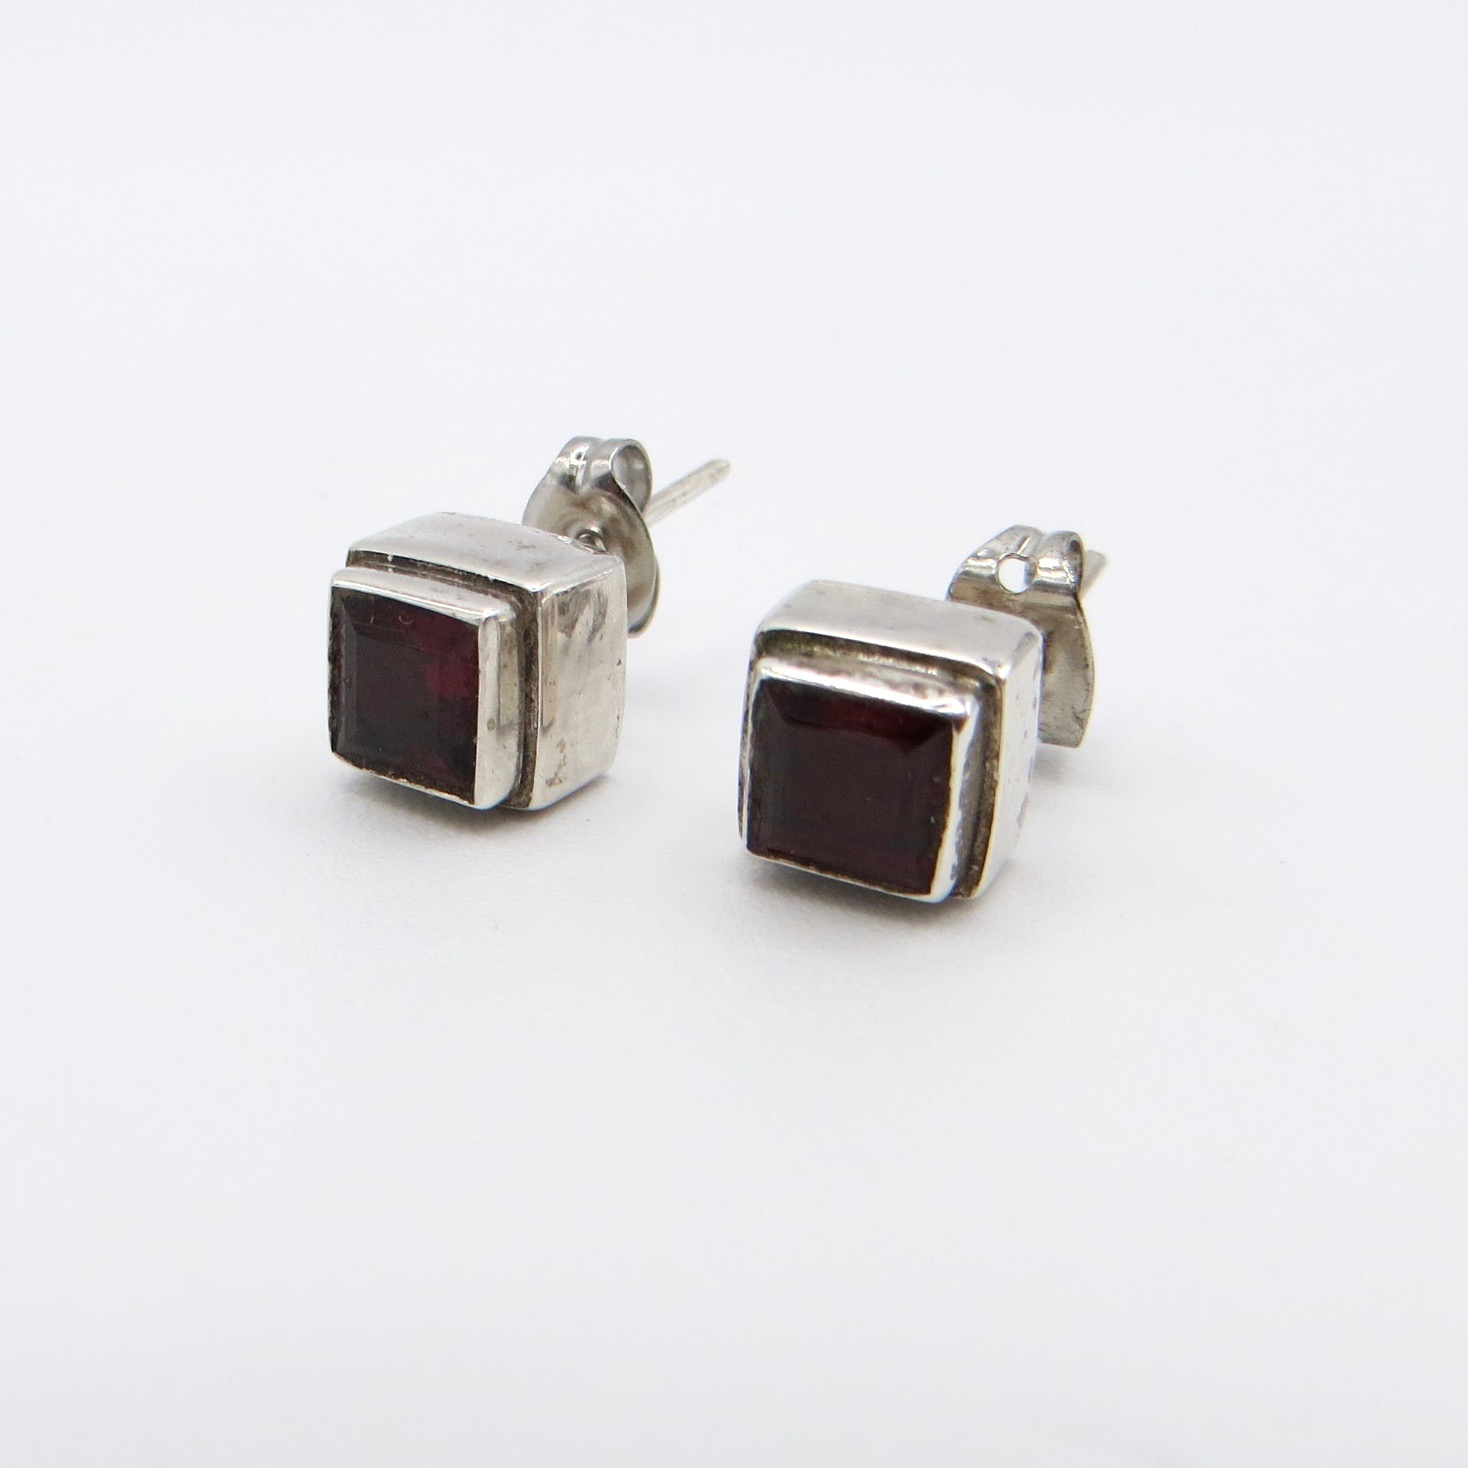 Silver & Garnet Square Stud Earrings